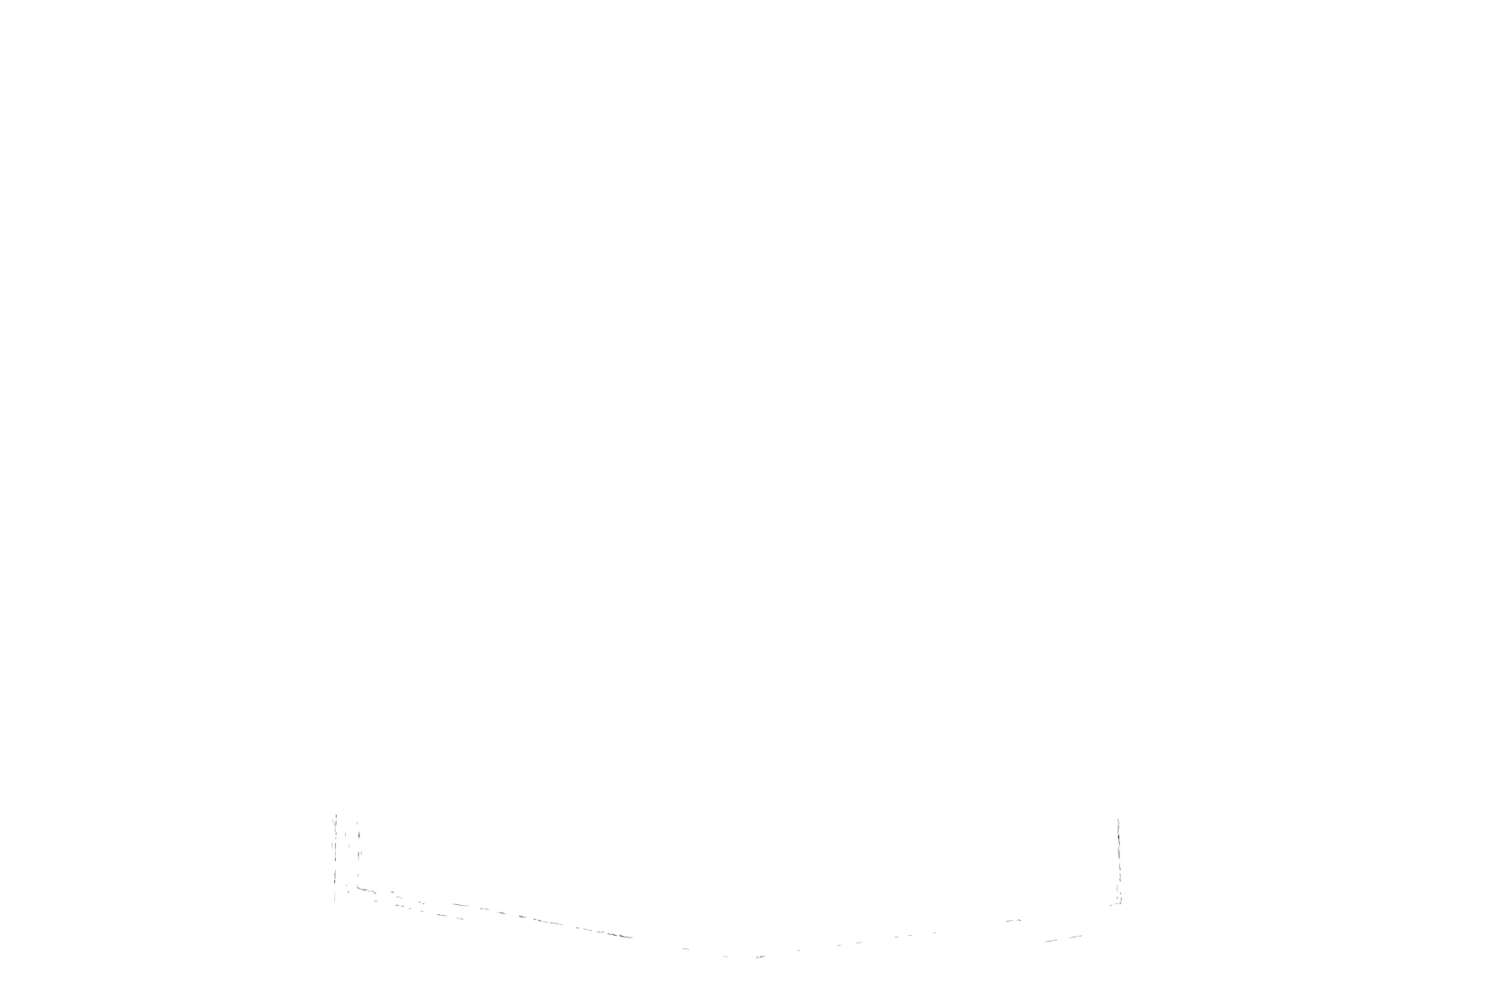 The Southern Growl